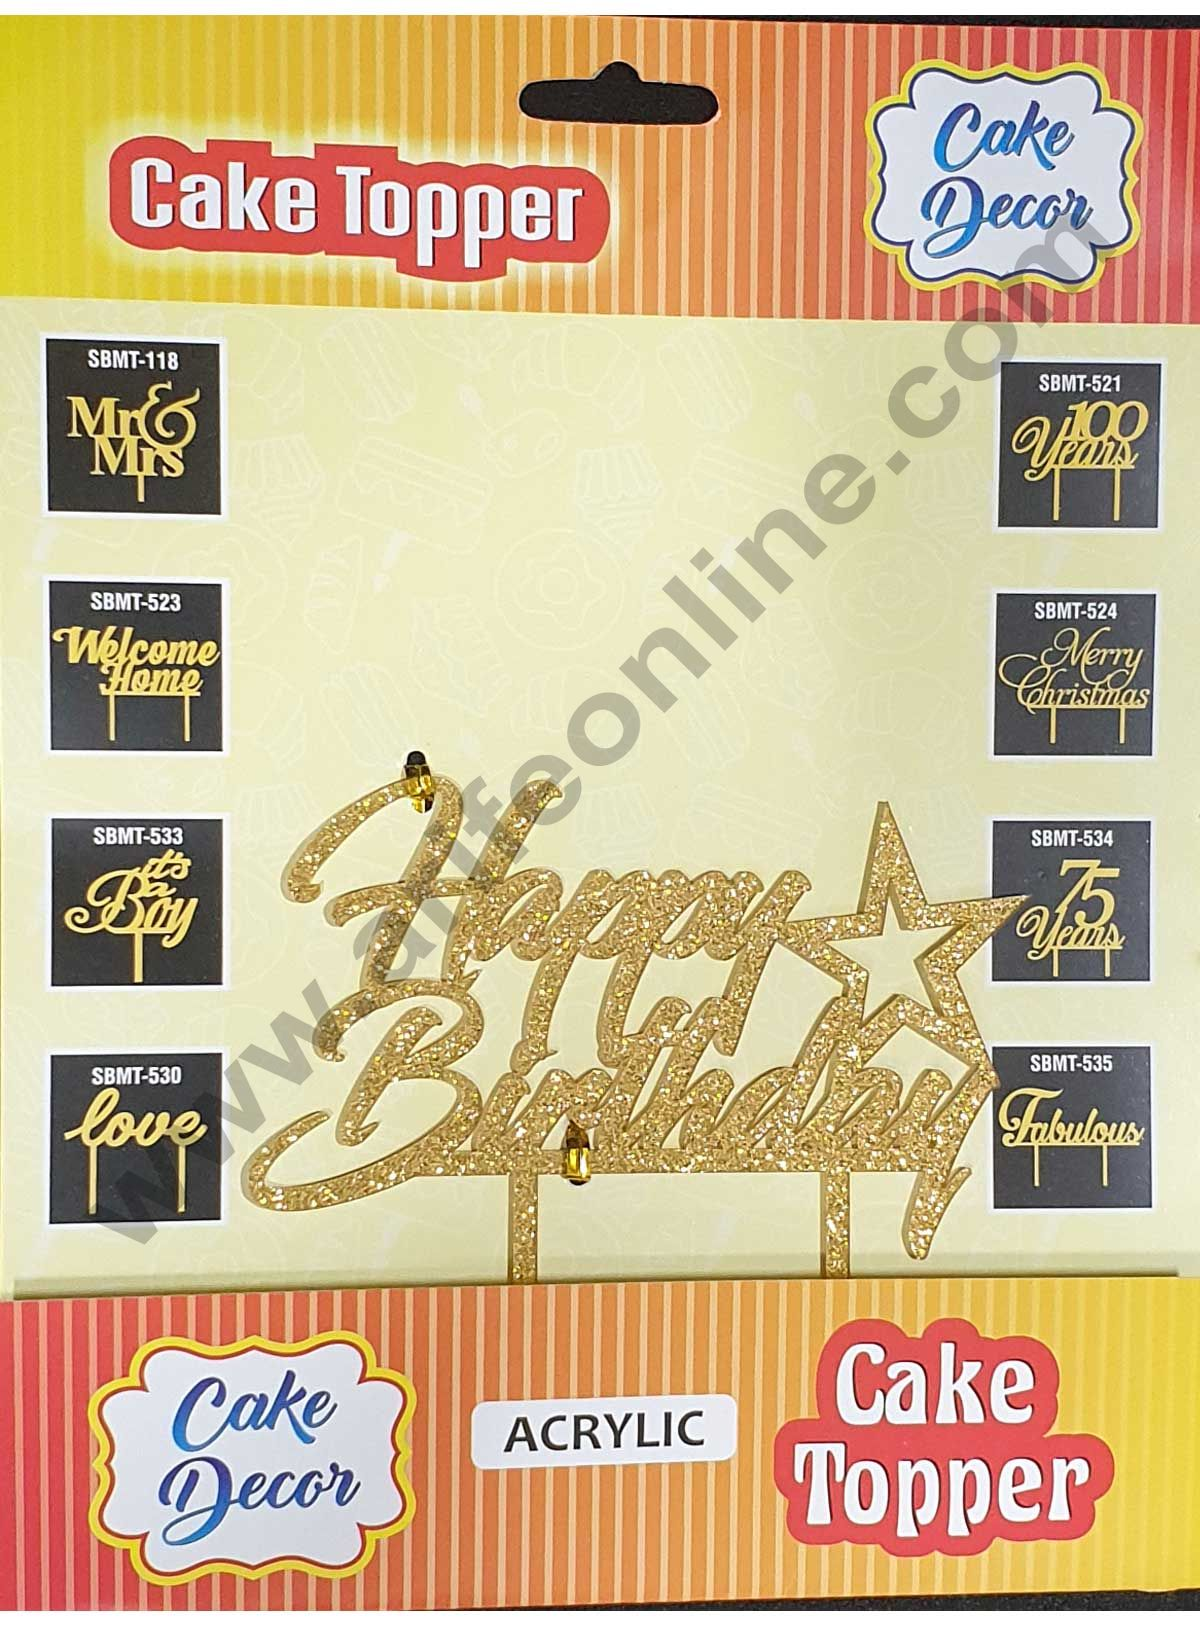 Cake Decor Mirror Shimmer Shining  Acrylic Cake Topper Happy Birthday